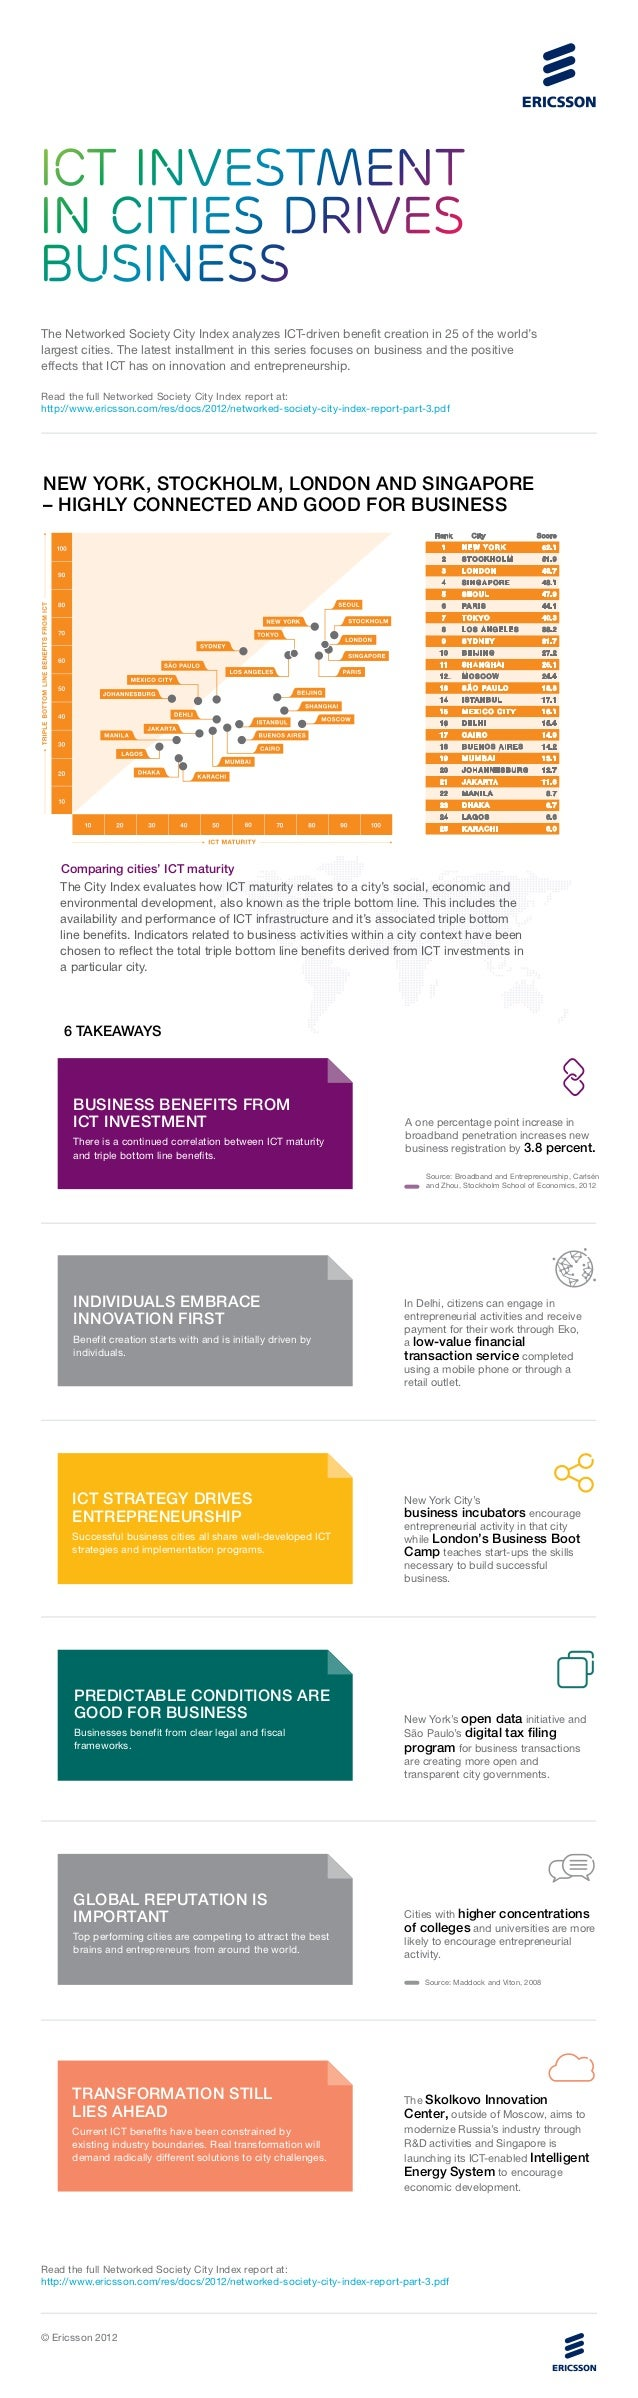 ICT INVESTMENTIN CITIES DRIVESBUSINESSThe Networked Society City Index analyzes ICT-driven benefit creation in 25 of the w...